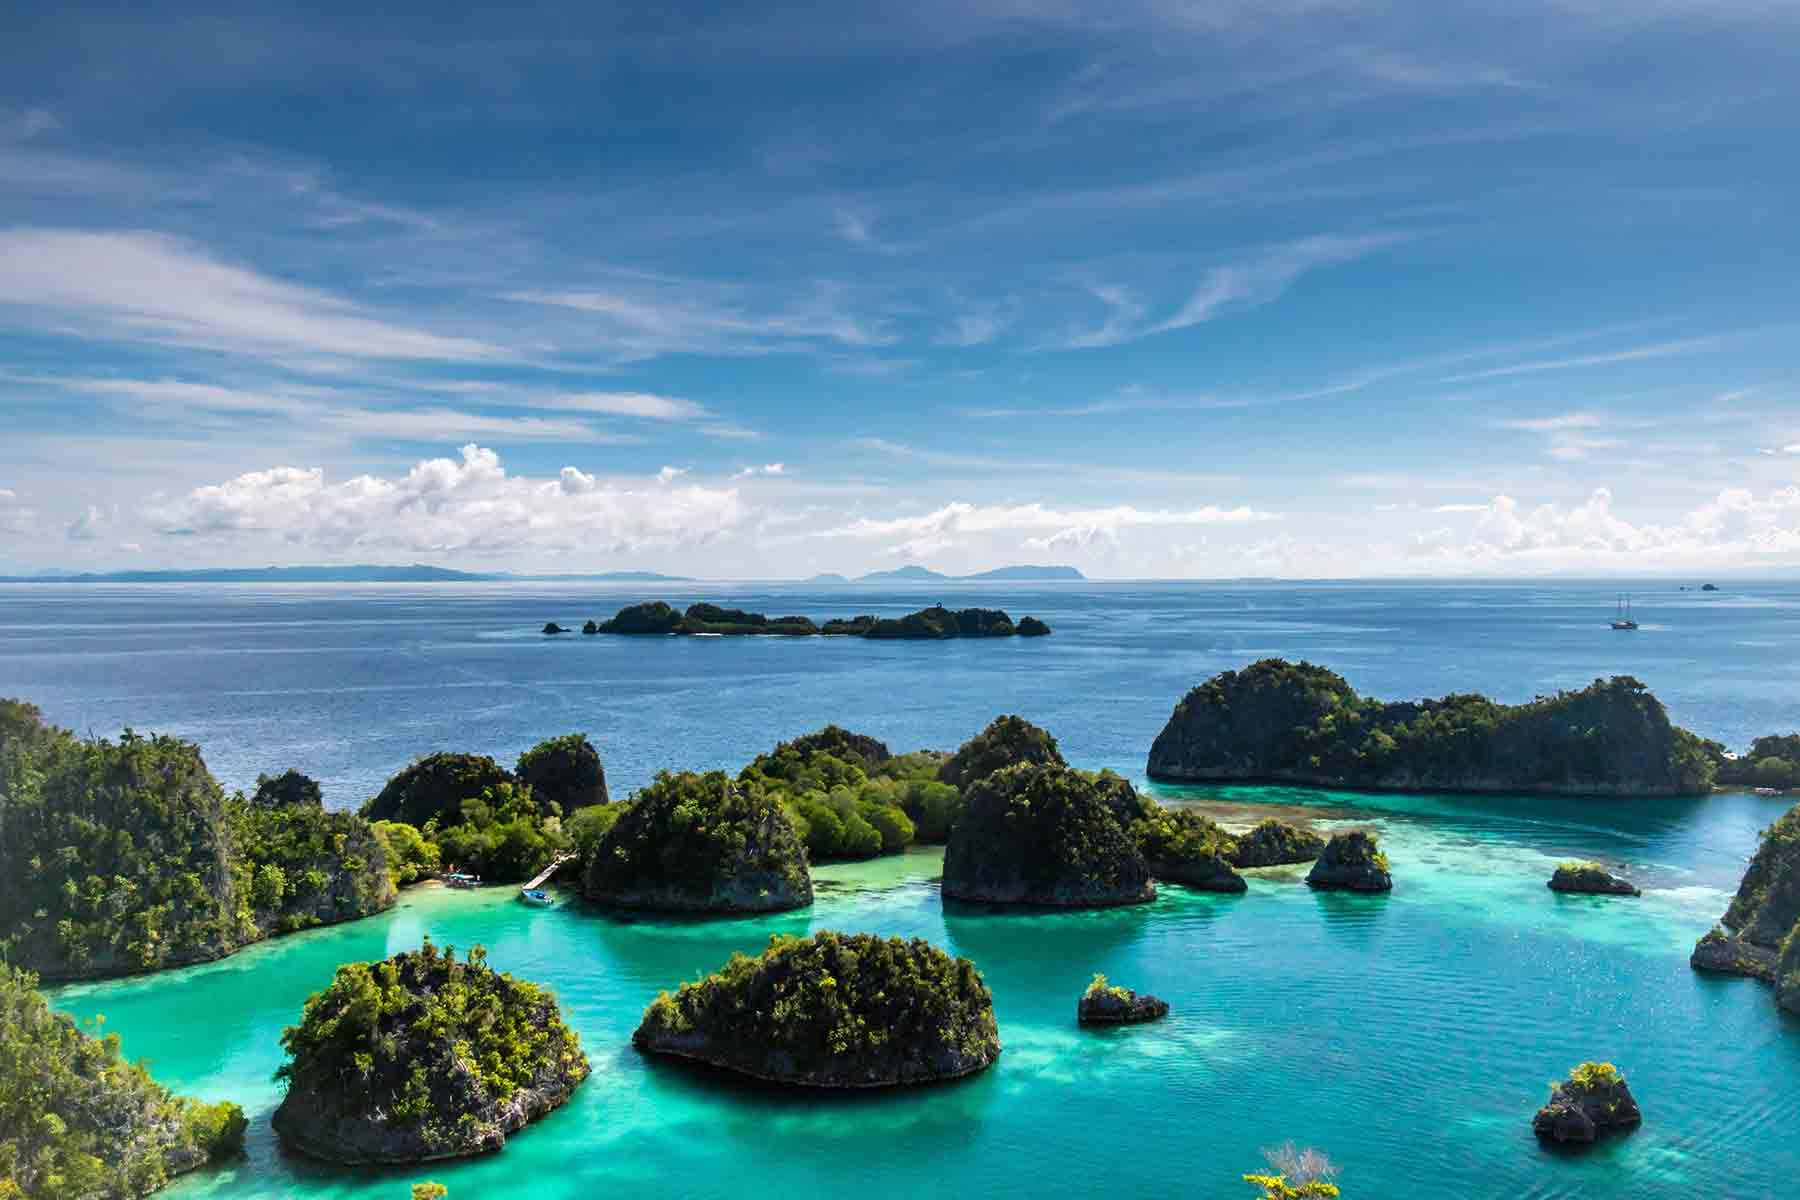 Small green islands in blue water